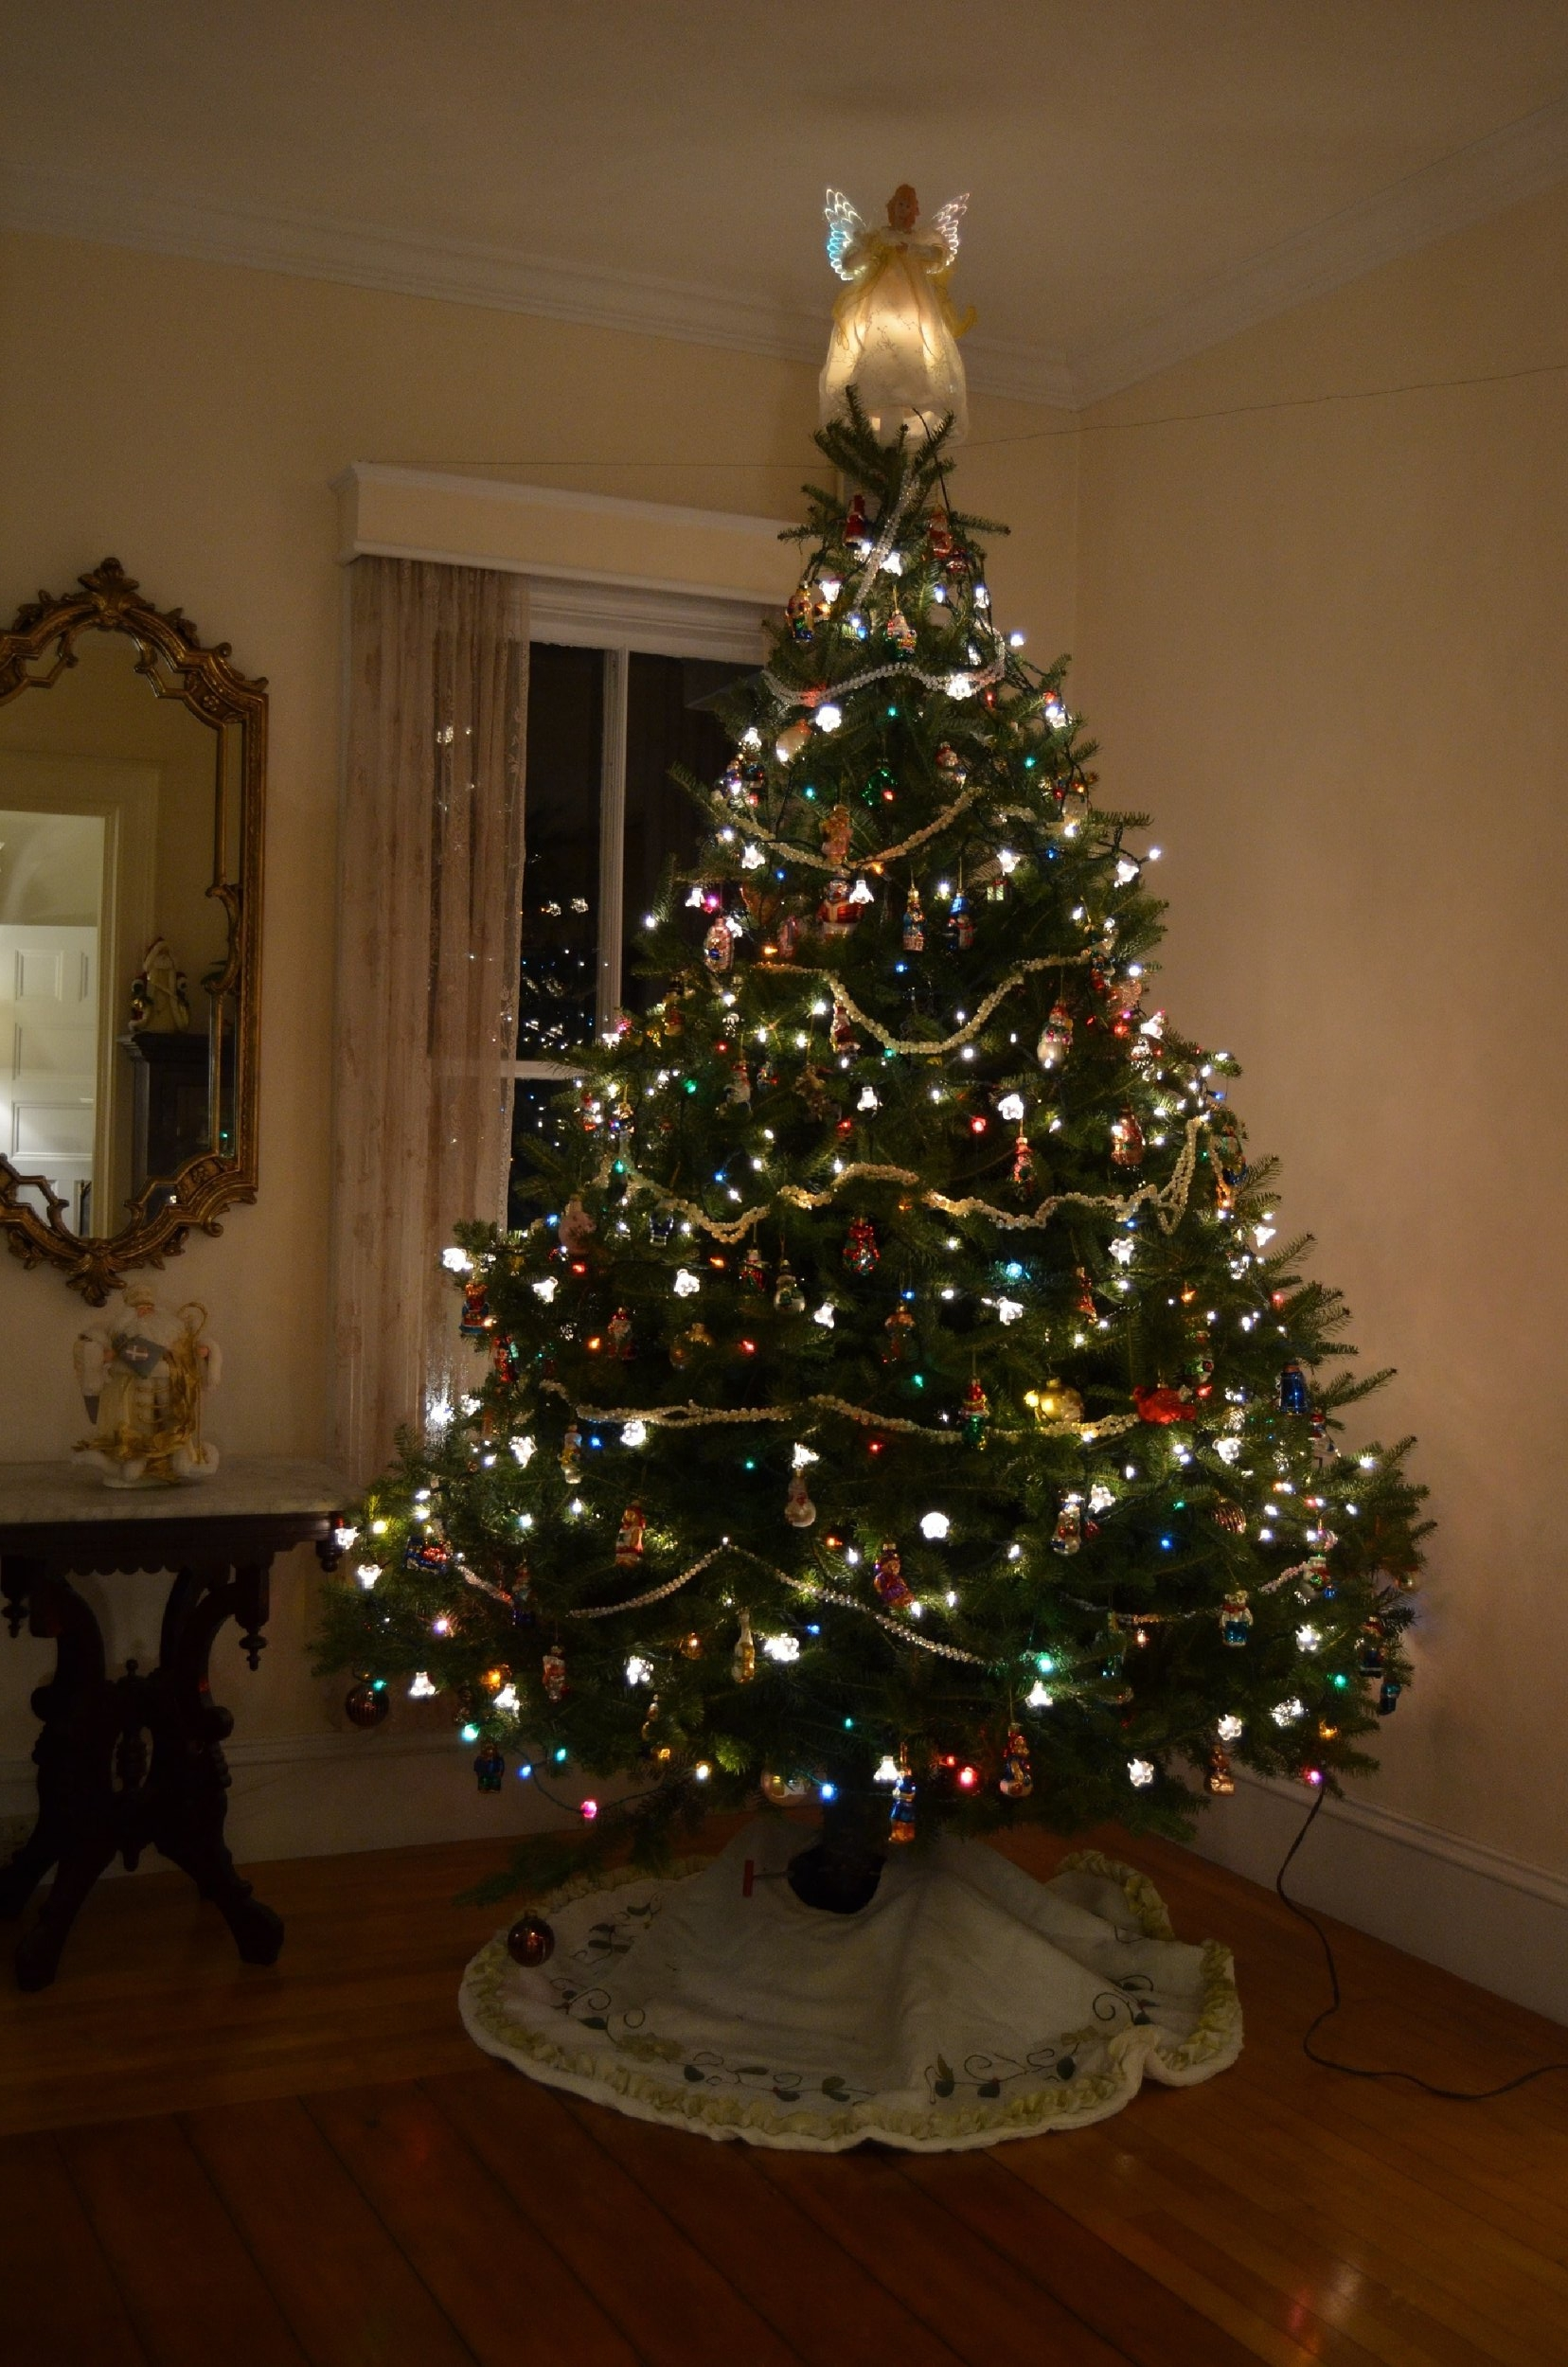 A colorfully lit tree graces the Parlor at Hawthorn Inn.